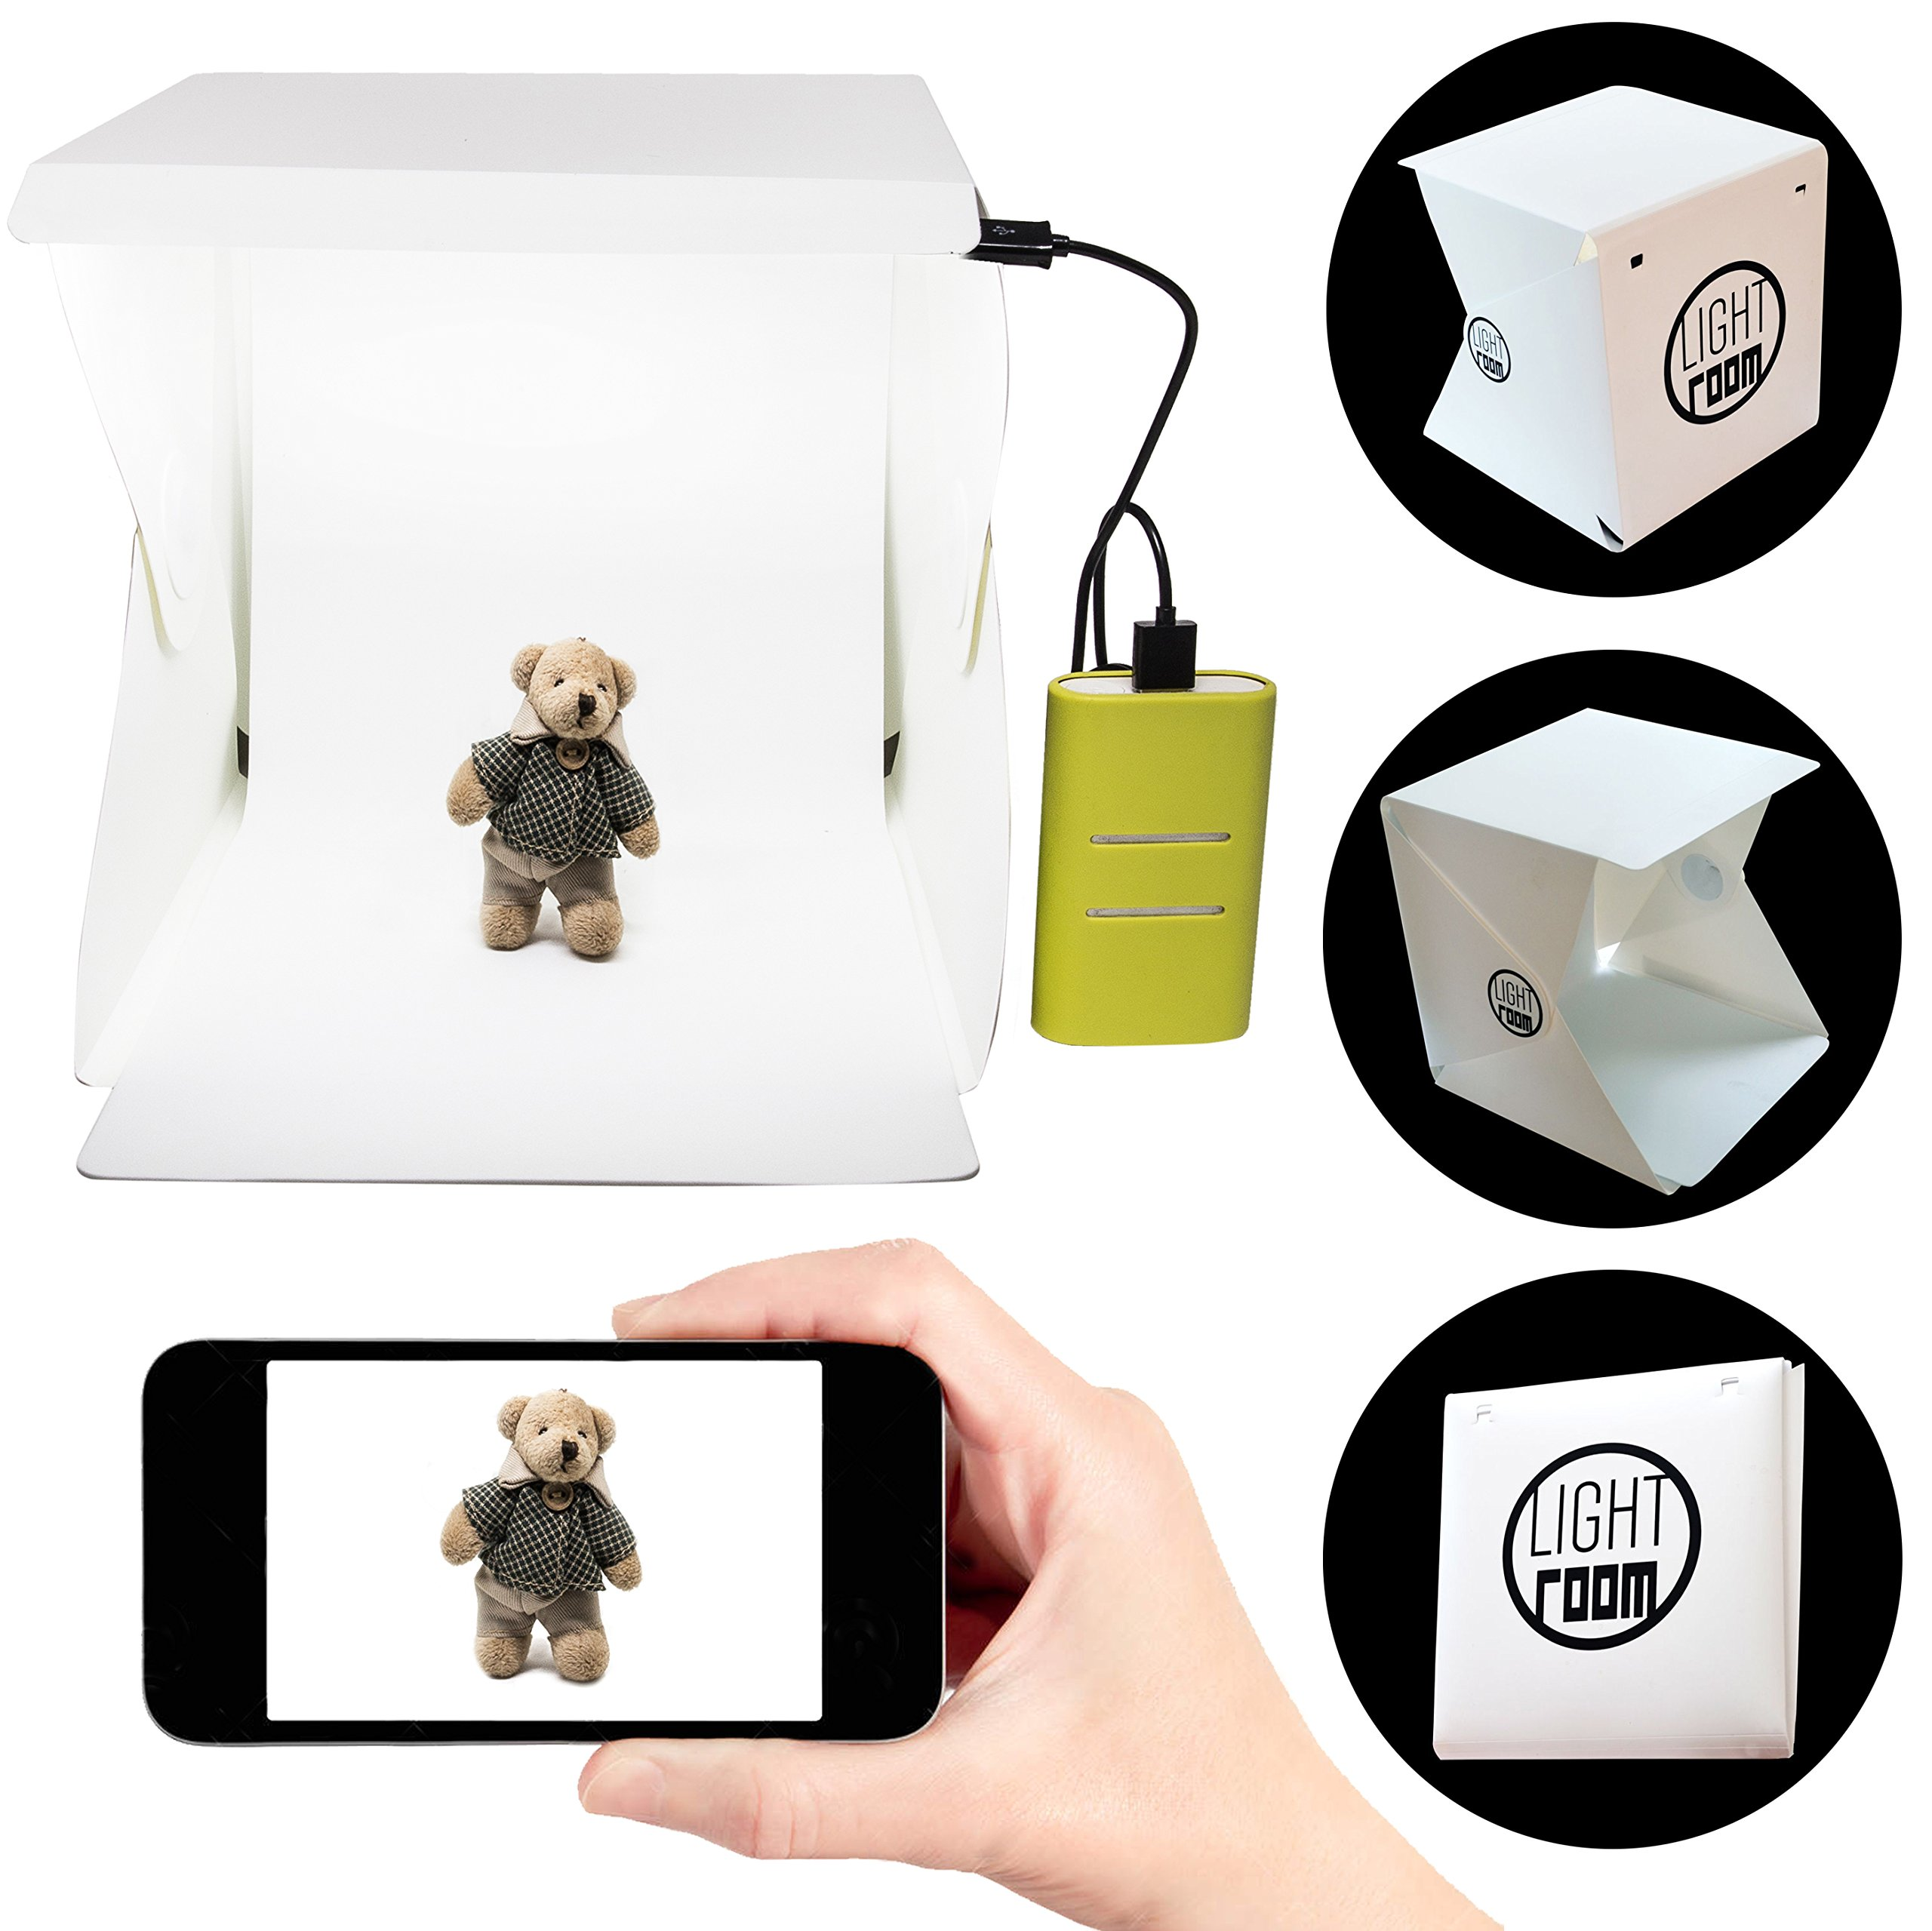 Portable Photography Studio 9 Inch - Mini Photo Studio Lightbox Product Photography Kit w/ LED Lights + Black & White Backdrop + 3ft USB Cord (Photo Box Light Tent) by PictureSnapz